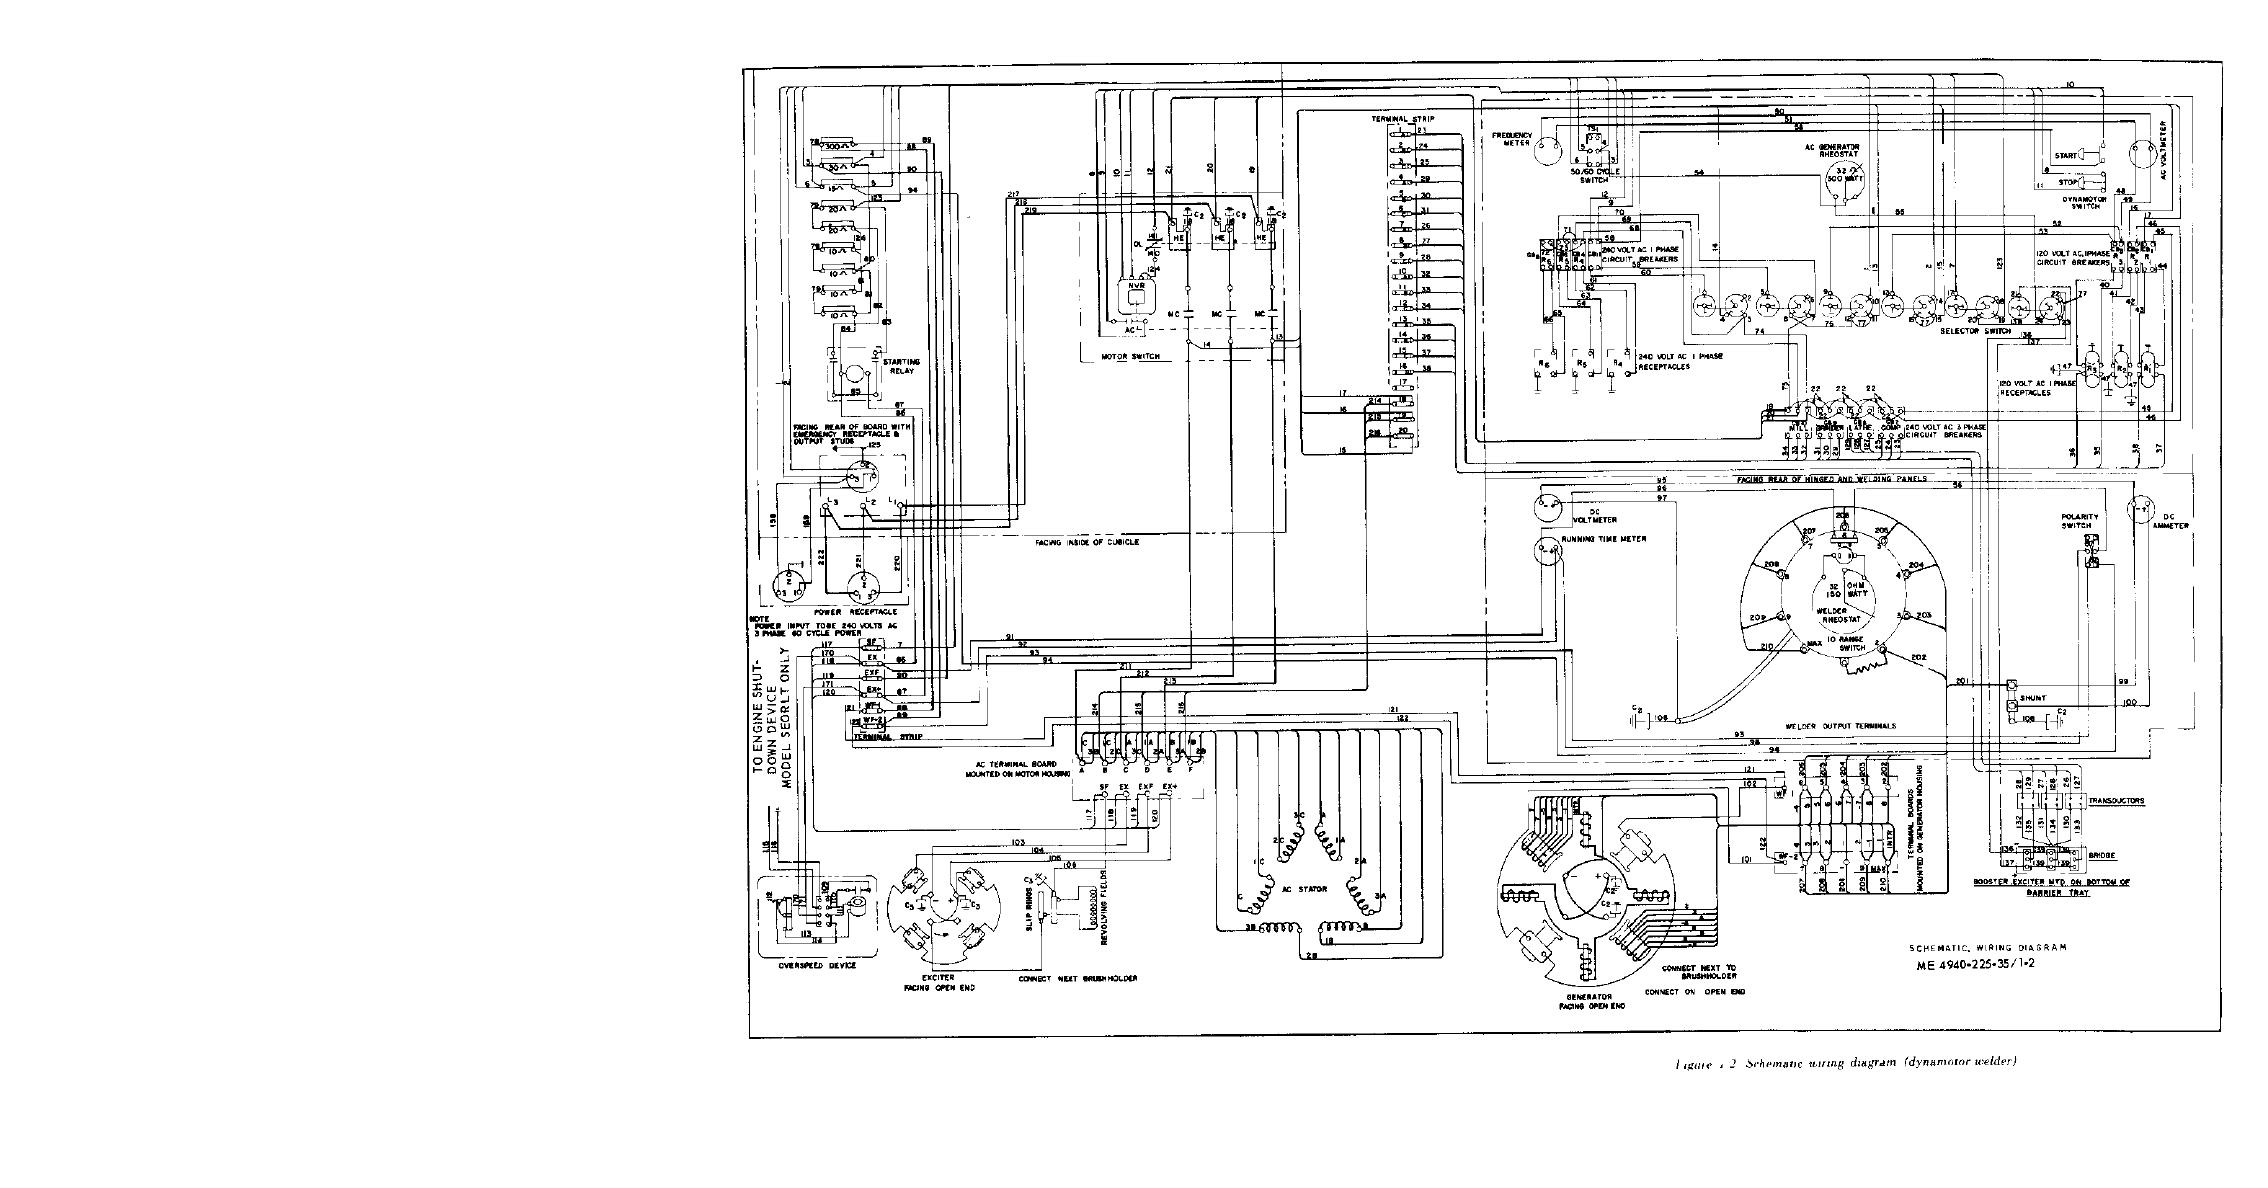 Lincoln Ac 225 S Wiring Diagram - Wiring Diagram LN4 on old hobart welder parts, old hobart welder generator, old hobart welder manual,